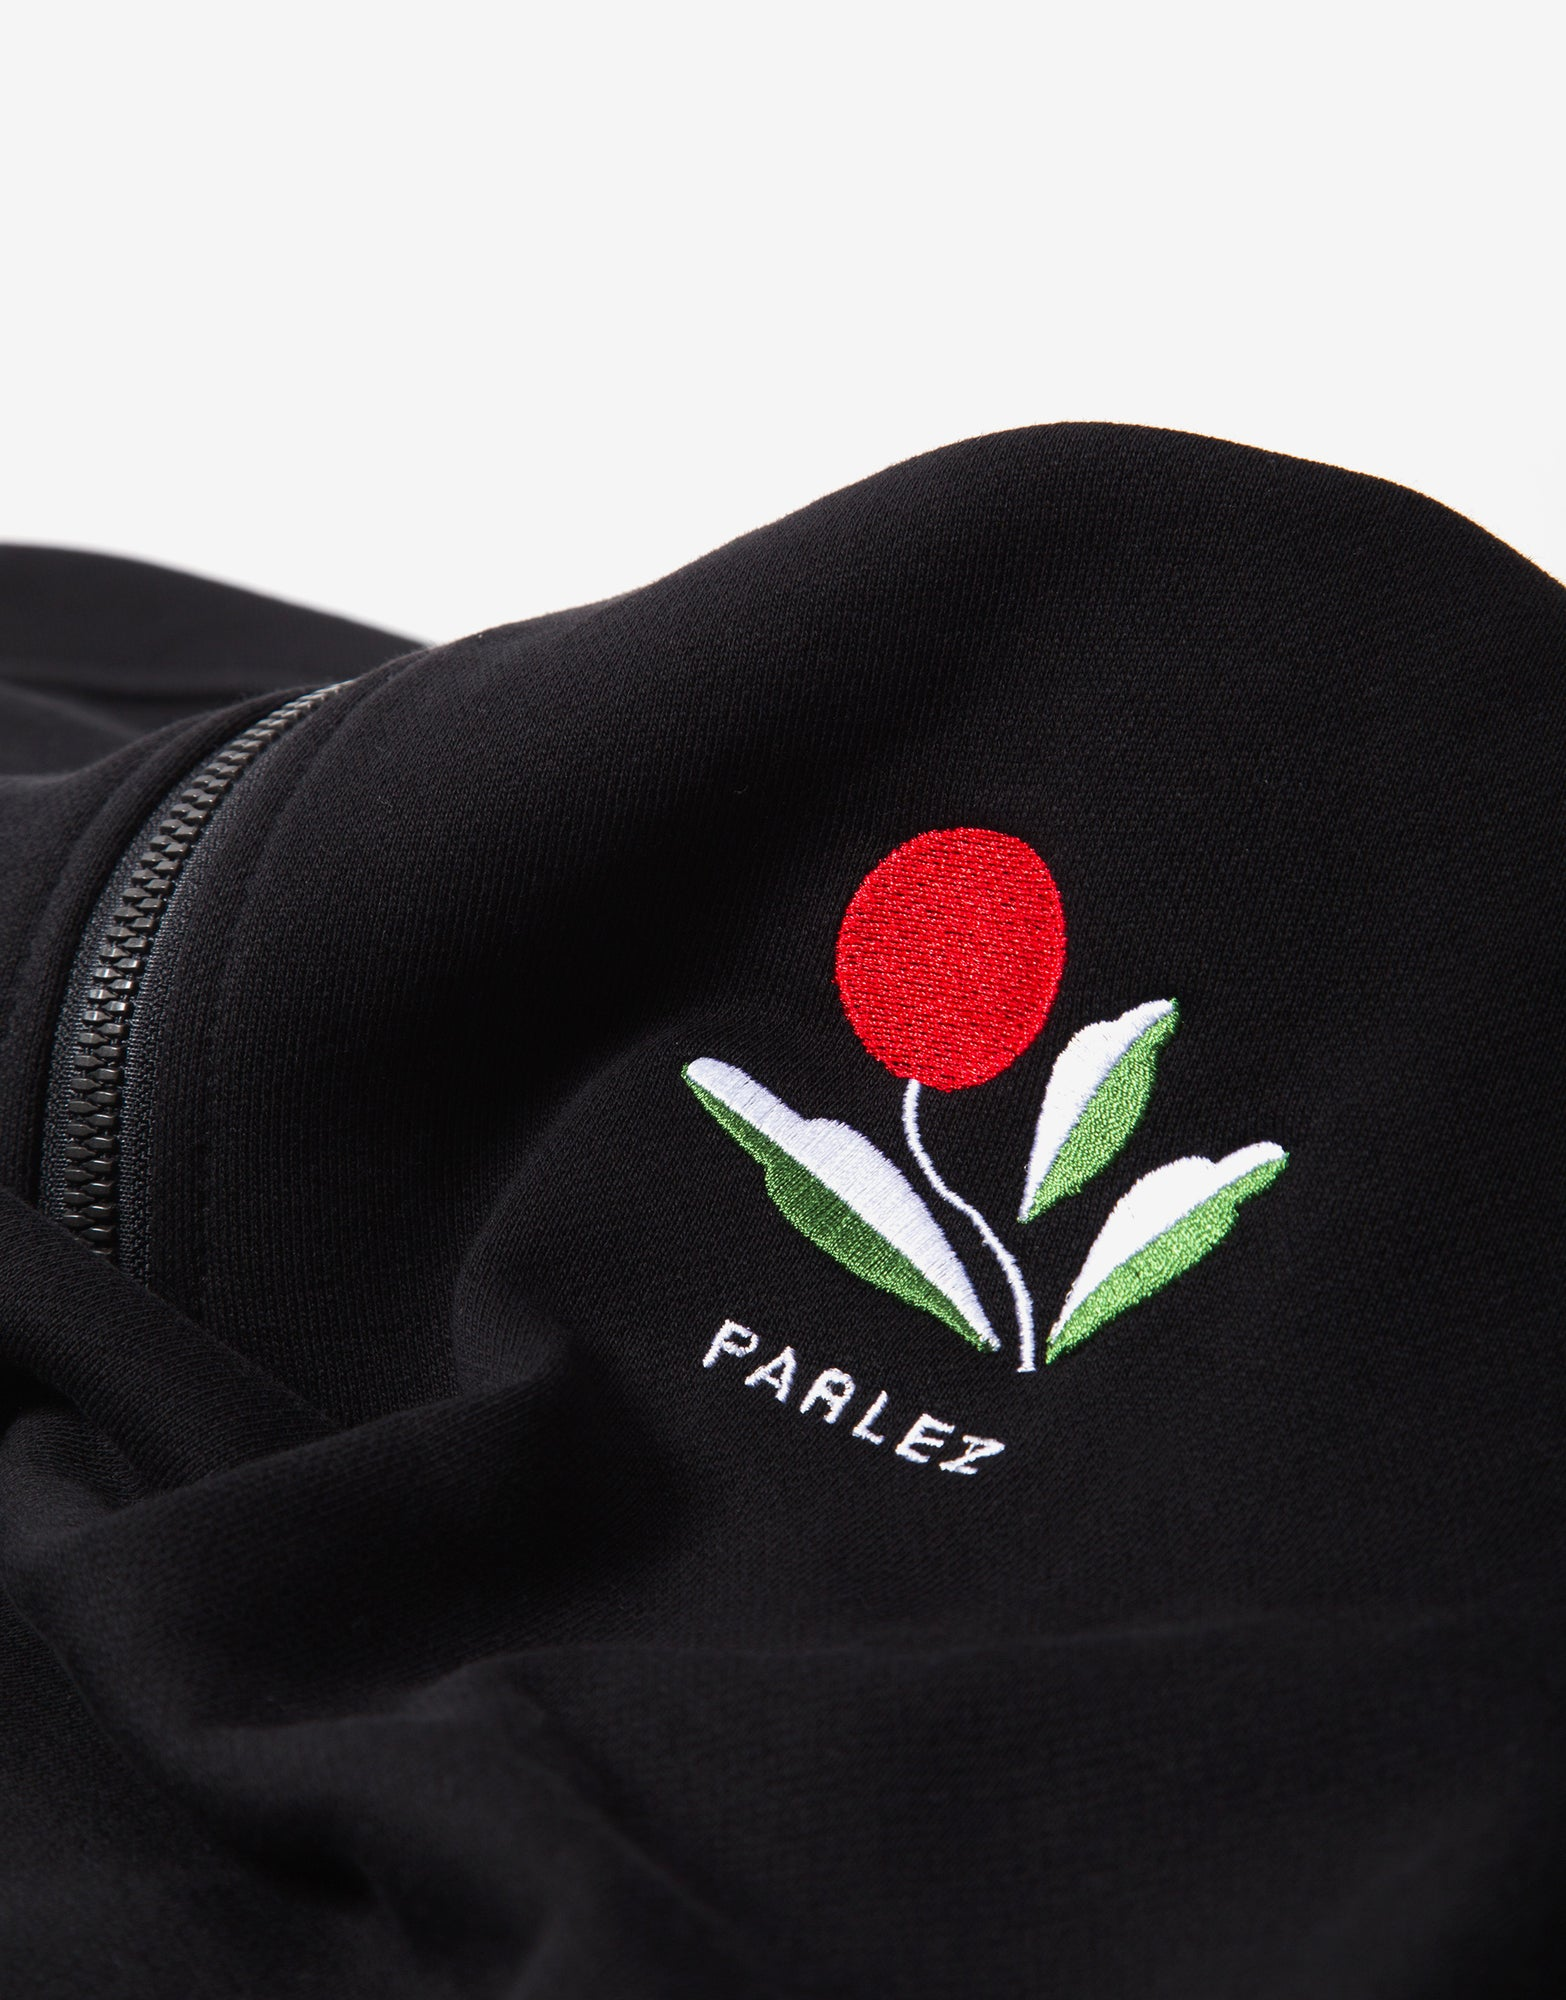 Parlez Kojo 1/4 Zip Sweatshirt - Black